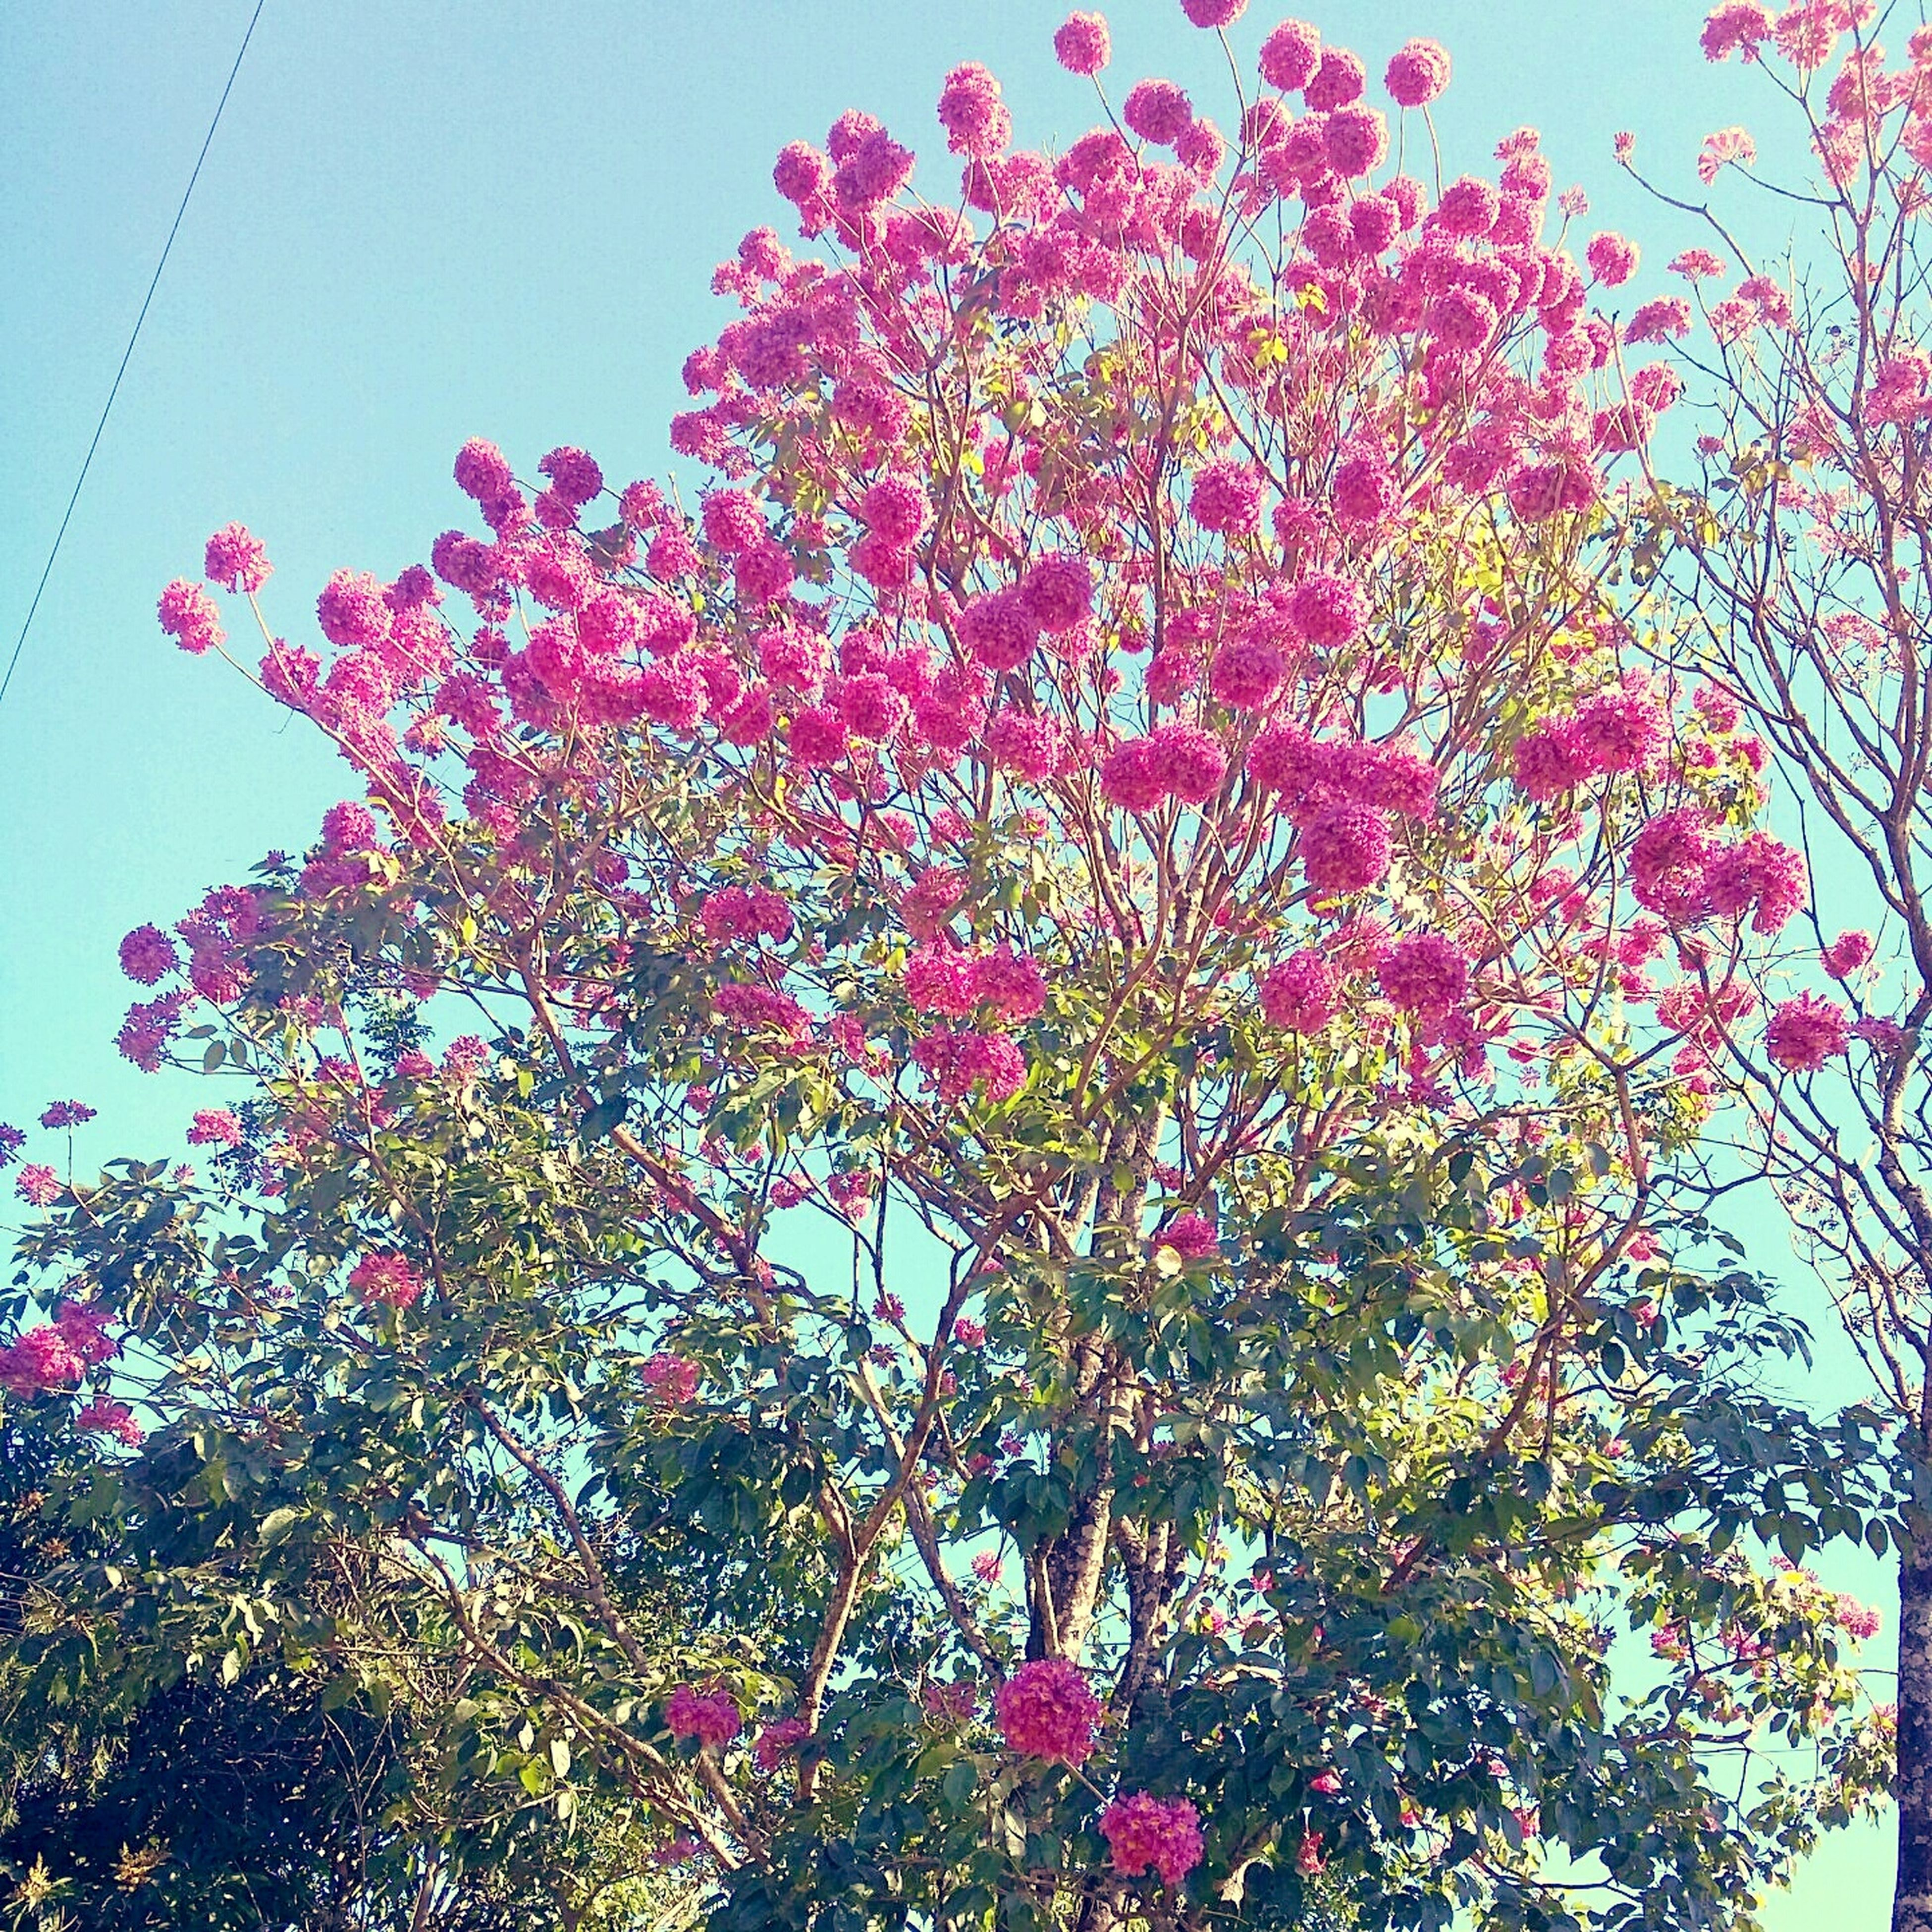 flower, low angle view, growth, freshness, beauty in nature, tree, fragility, nature, clear sky, pink color, blooming, sky, branch, in bloom, plant, blossom, red, petal, day, outdoors